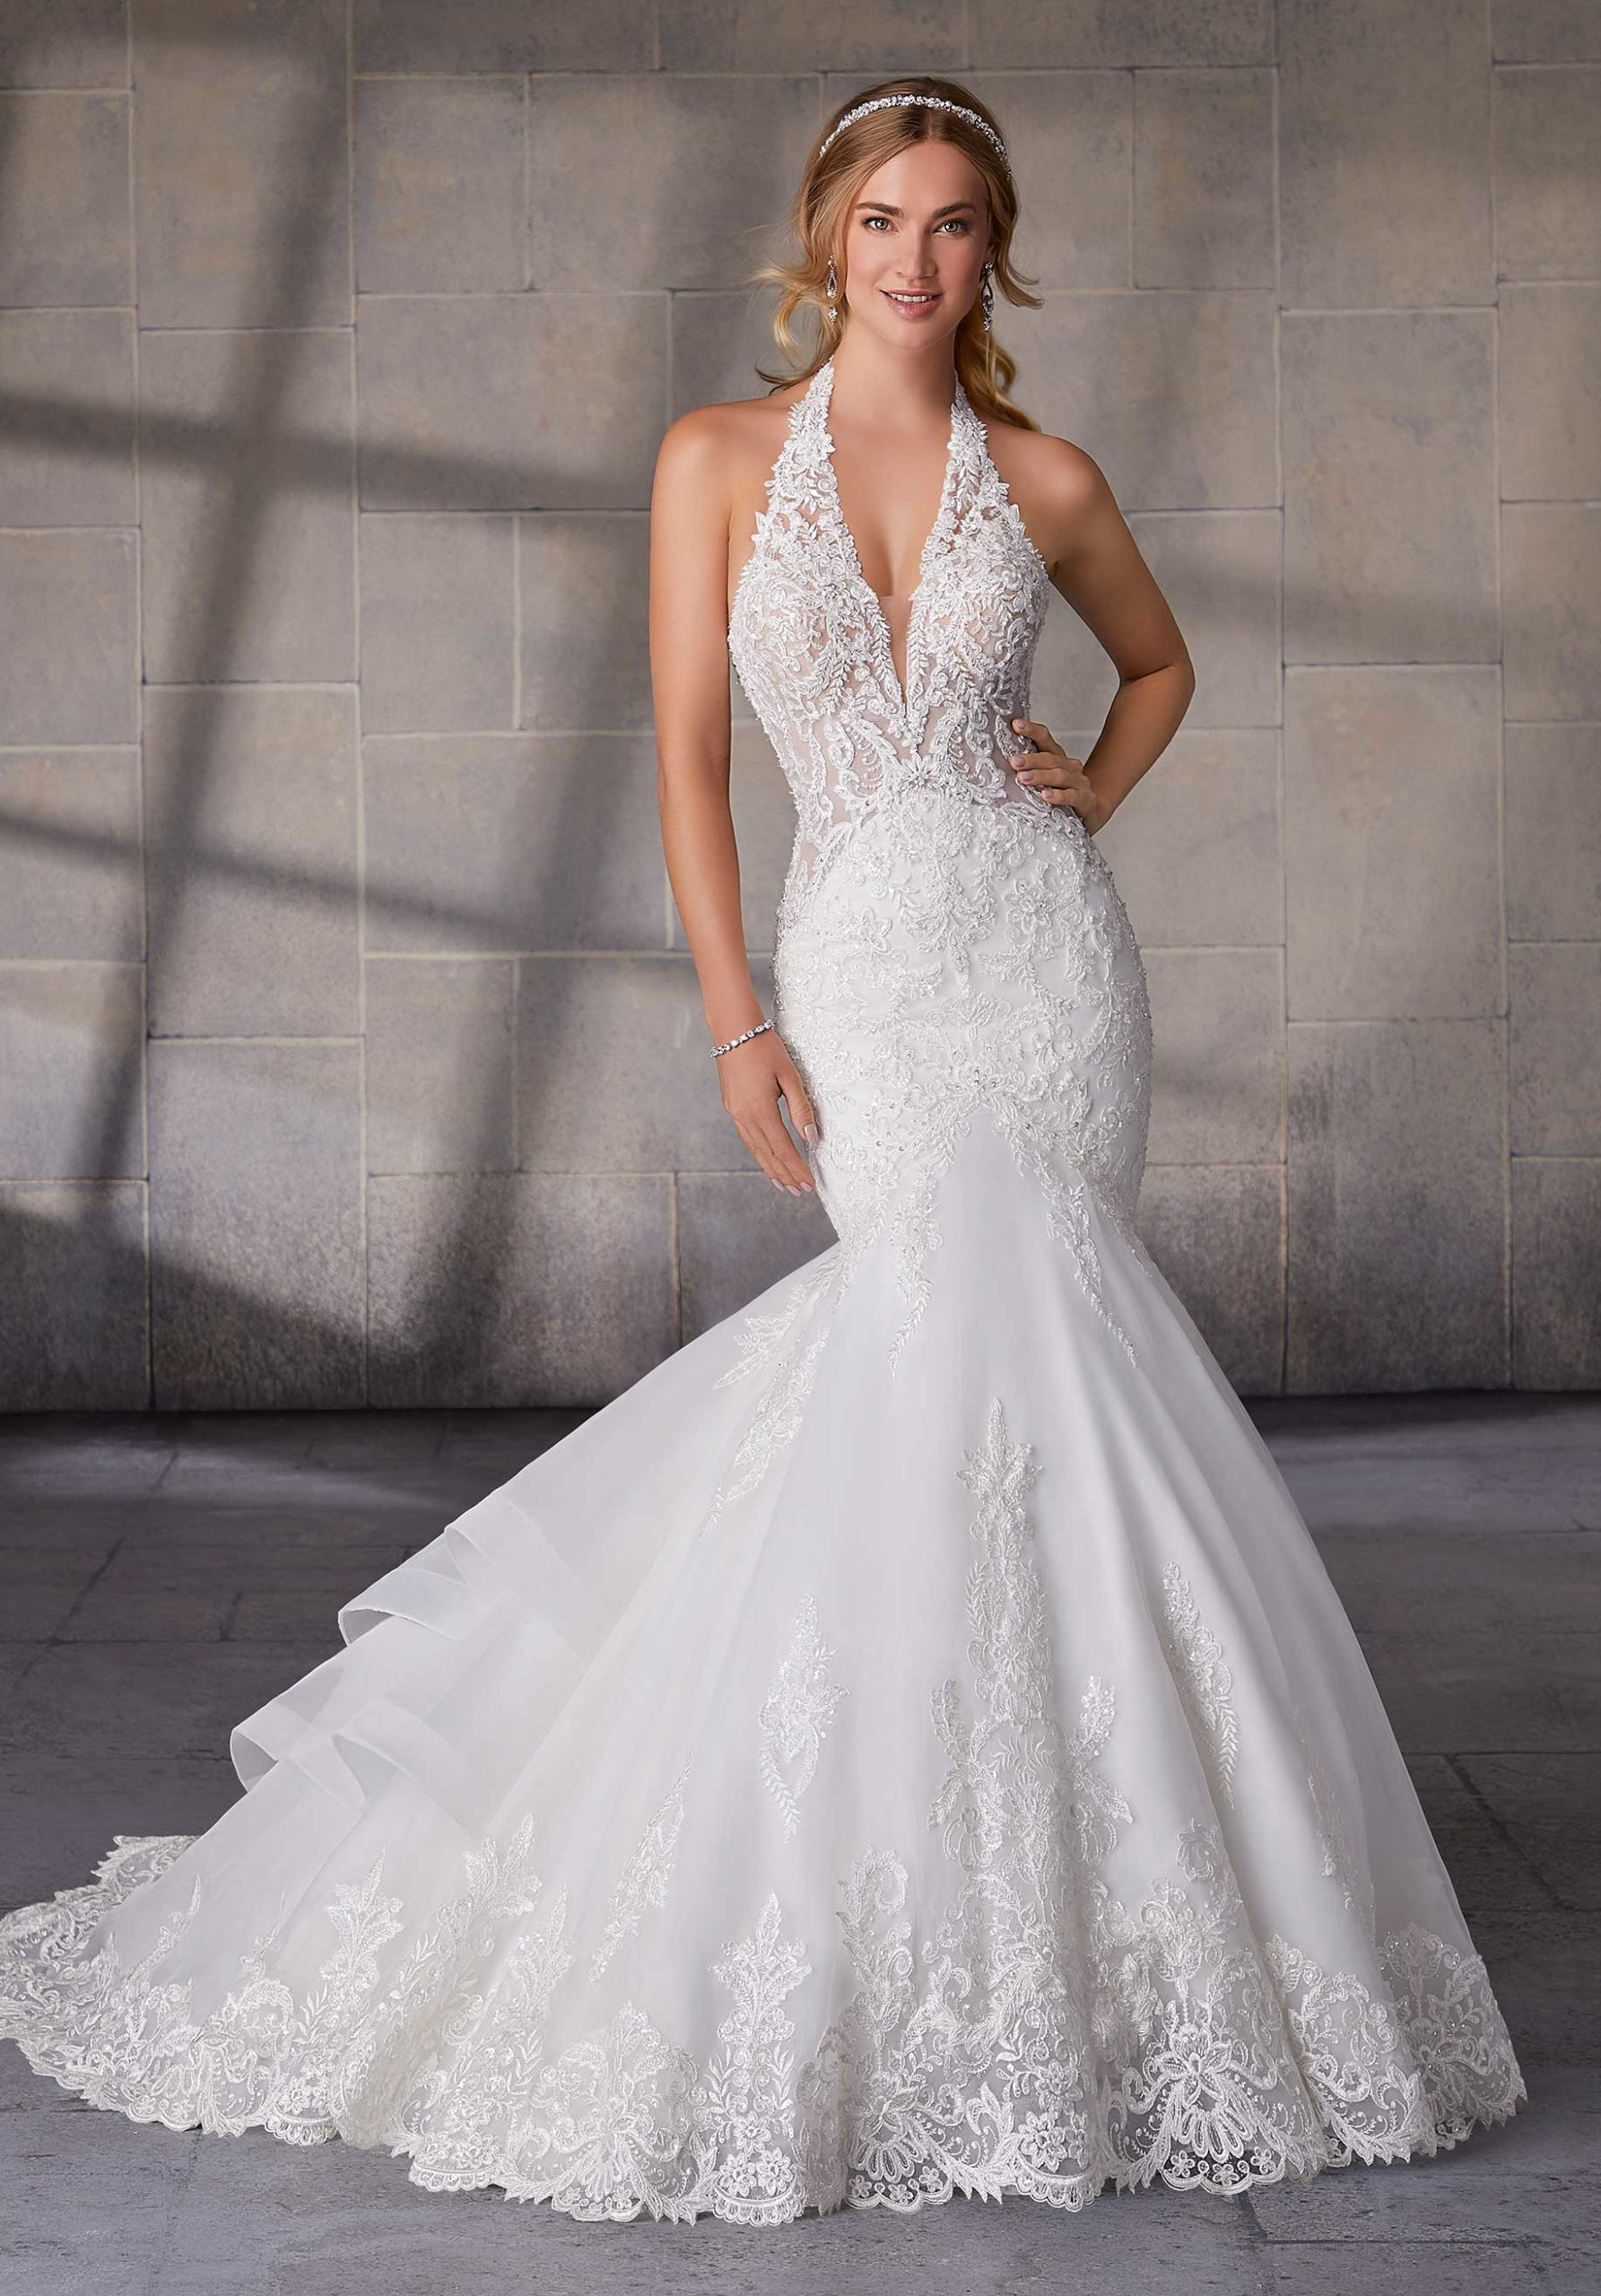 Morilee Wedding Gown Dress style 2126